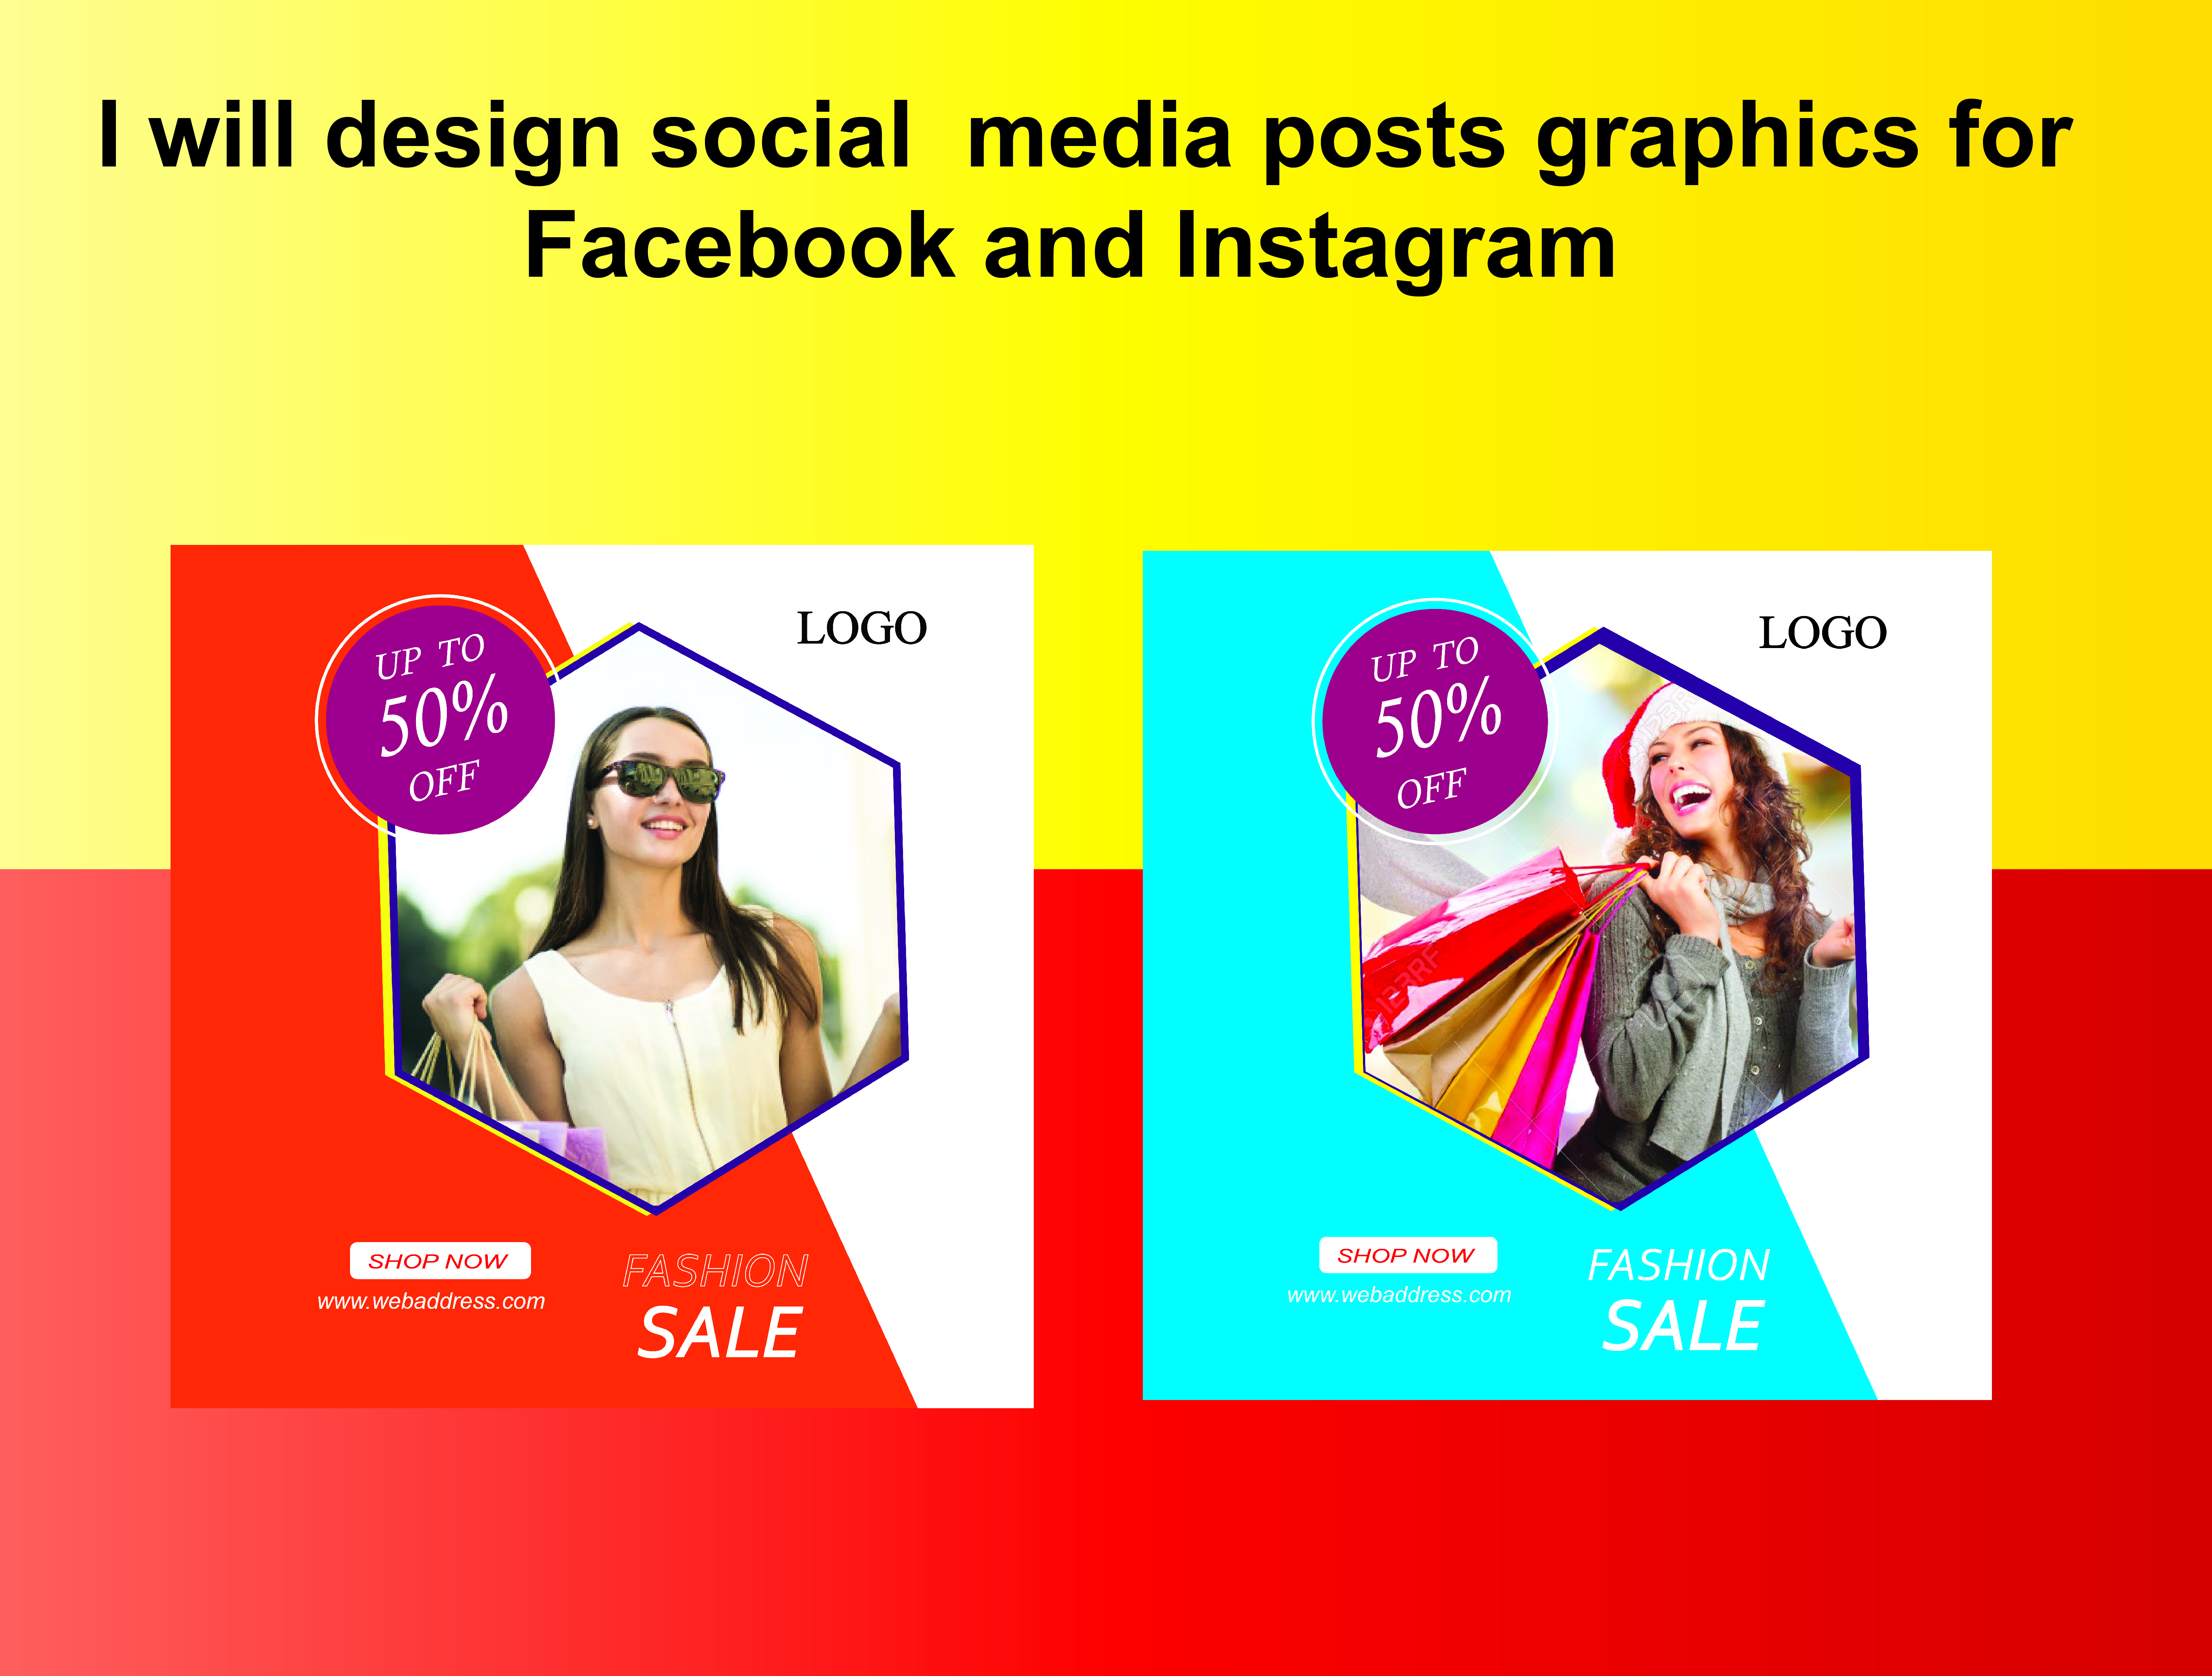 I will design social media posts graphics for Facebook and Instagram